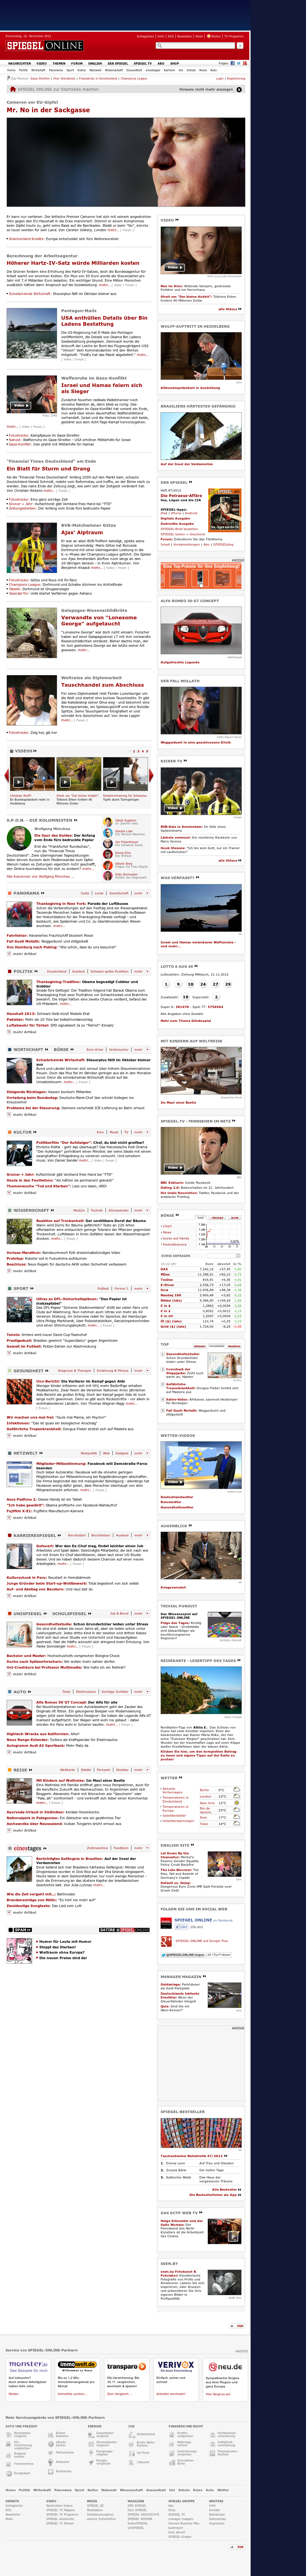 Spiegel Online at Thursday Nov. 22, 2012, 9:30 a.m. UTC